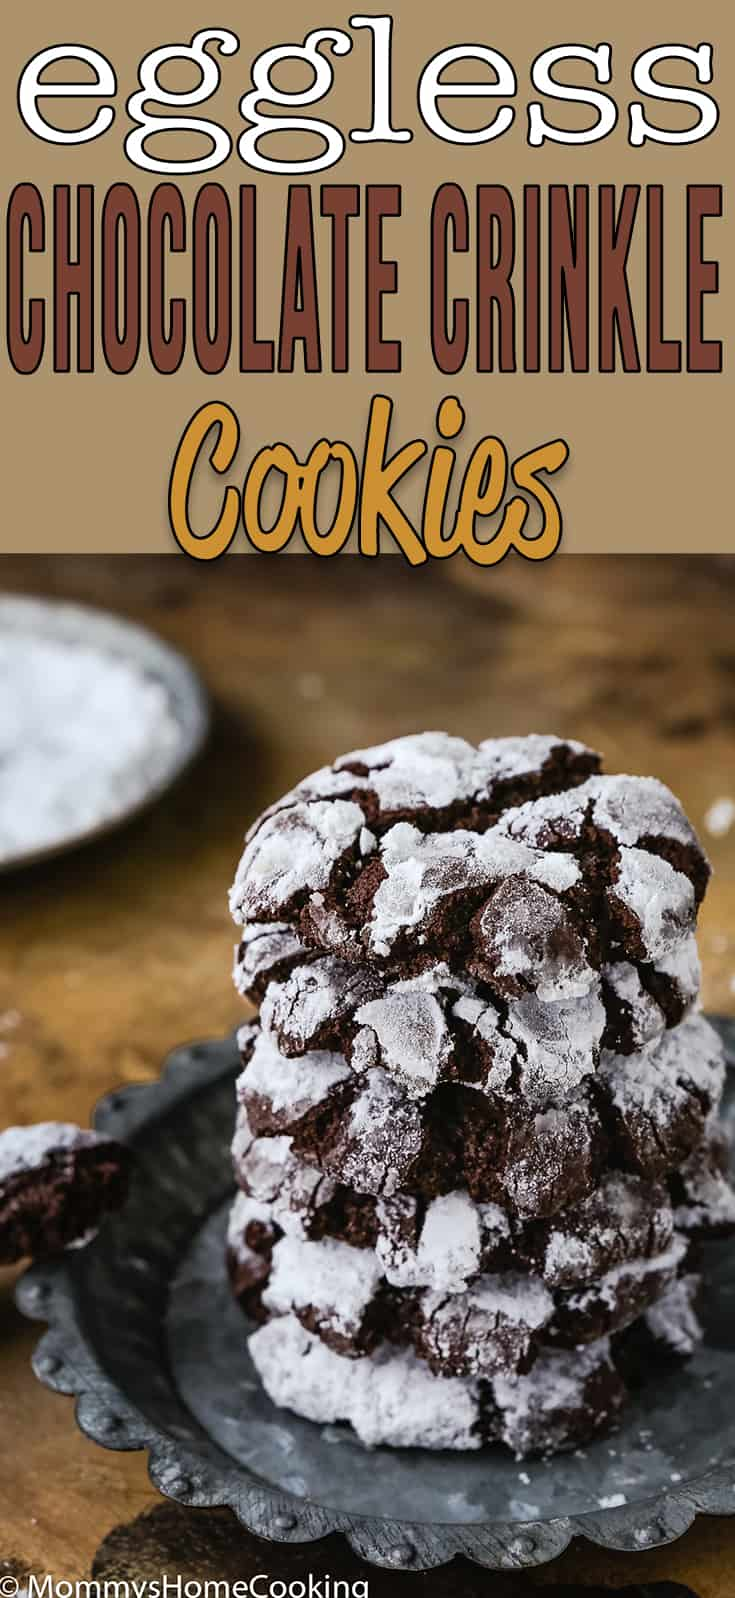 Eggless Chocolate Crinkle Cookies | Mommy's Home Cooking